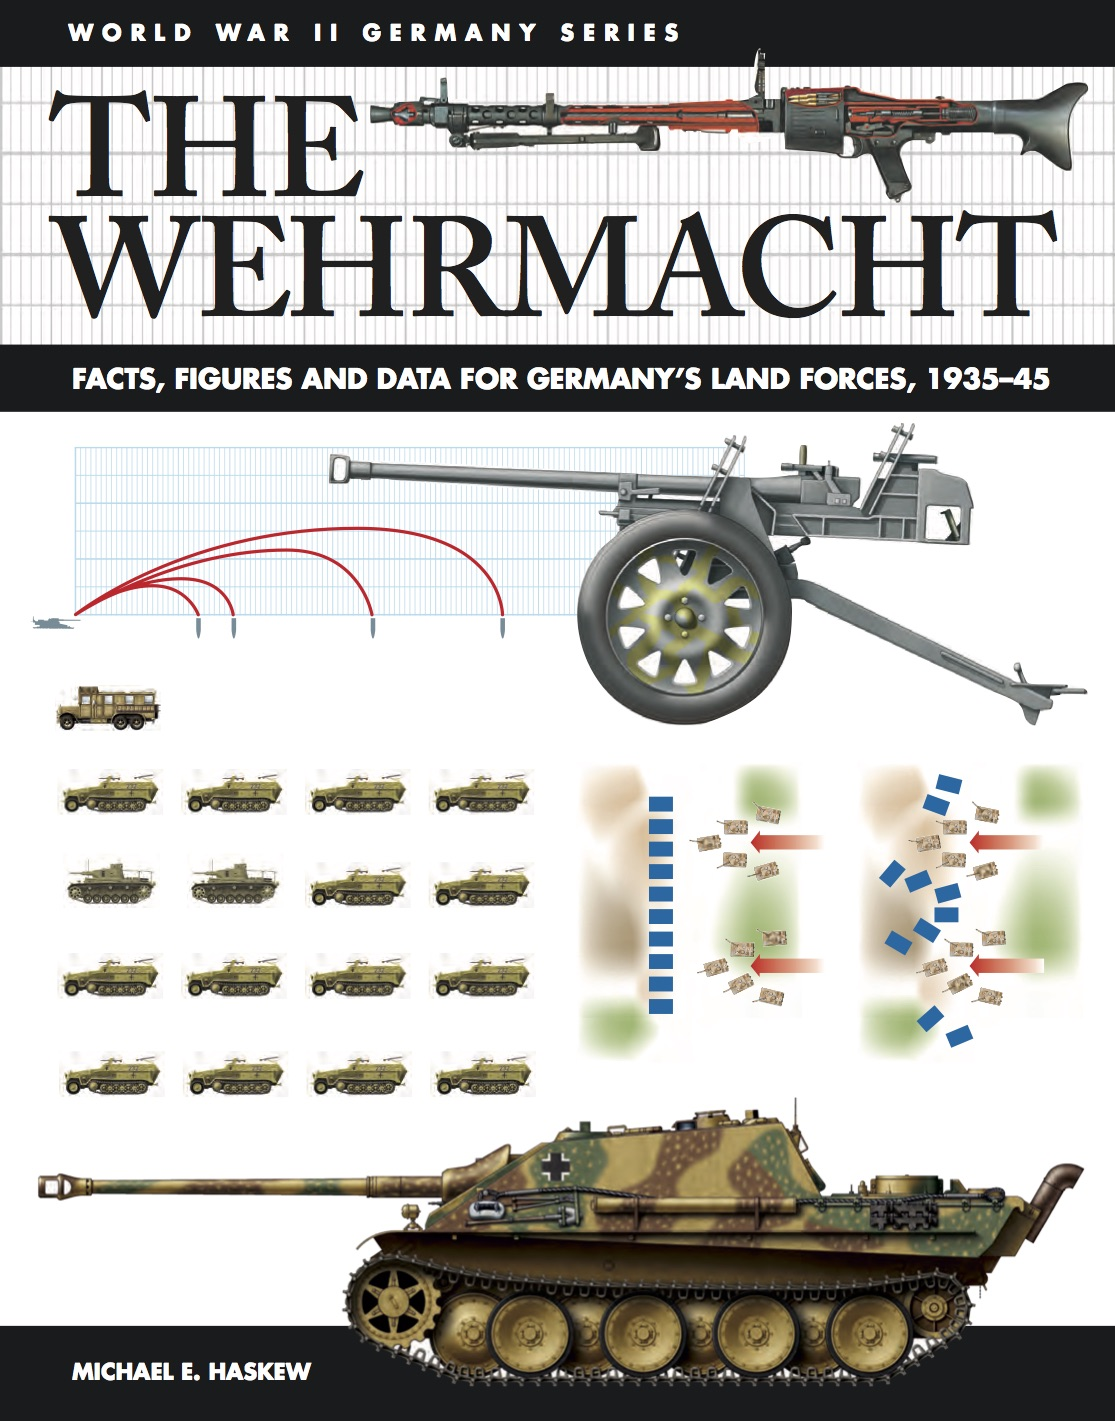 World War II Germany: The Wehrmacht